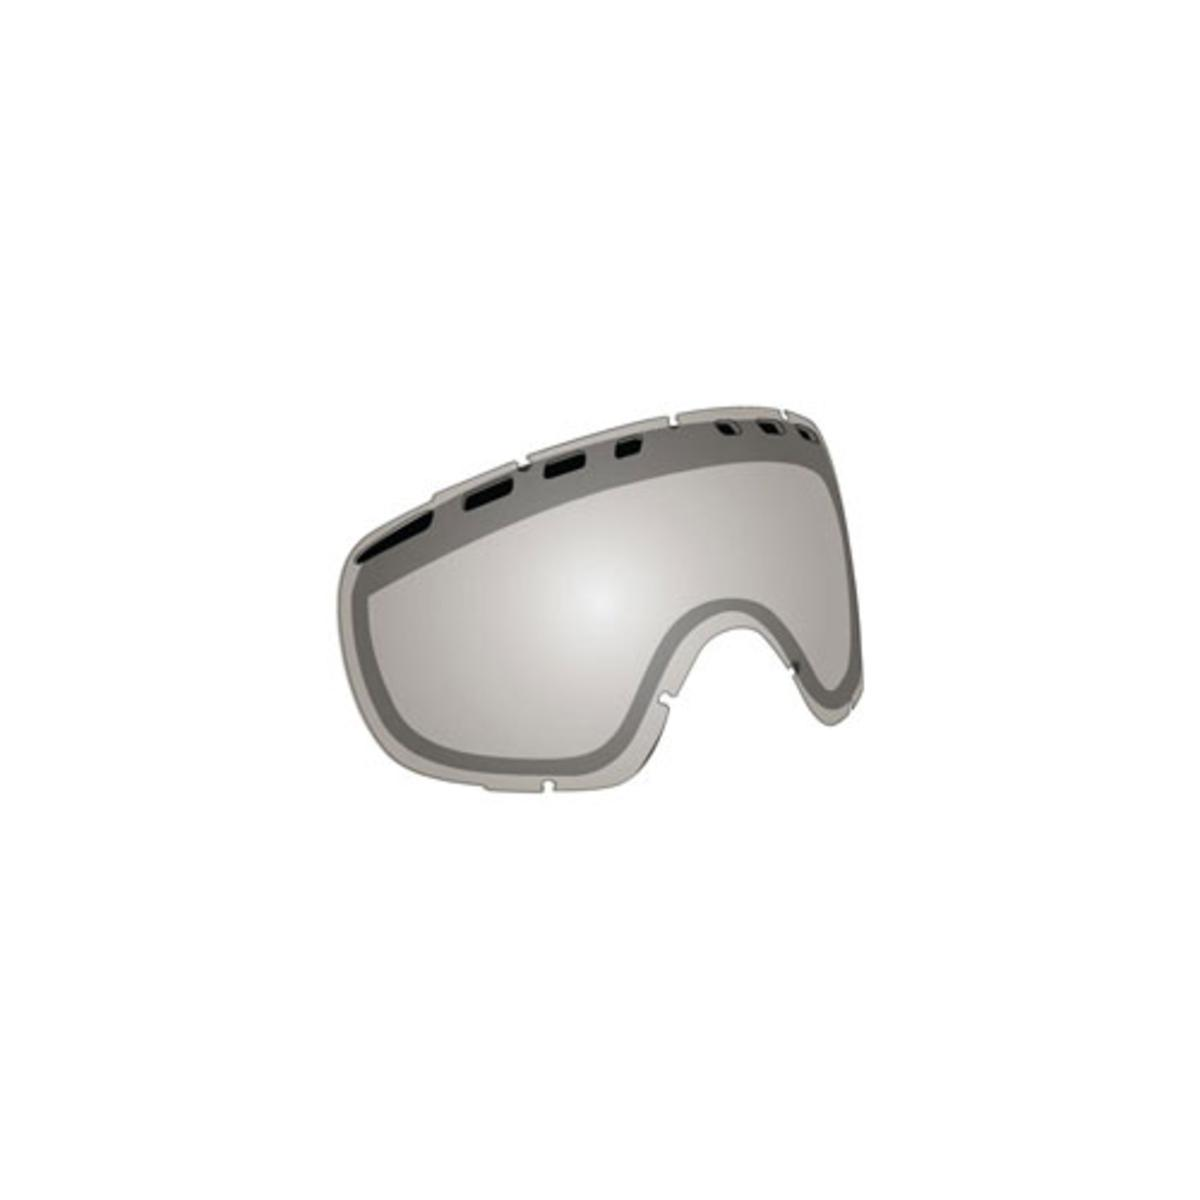 Dragon Lil D Goggles Youth Replacement Lens